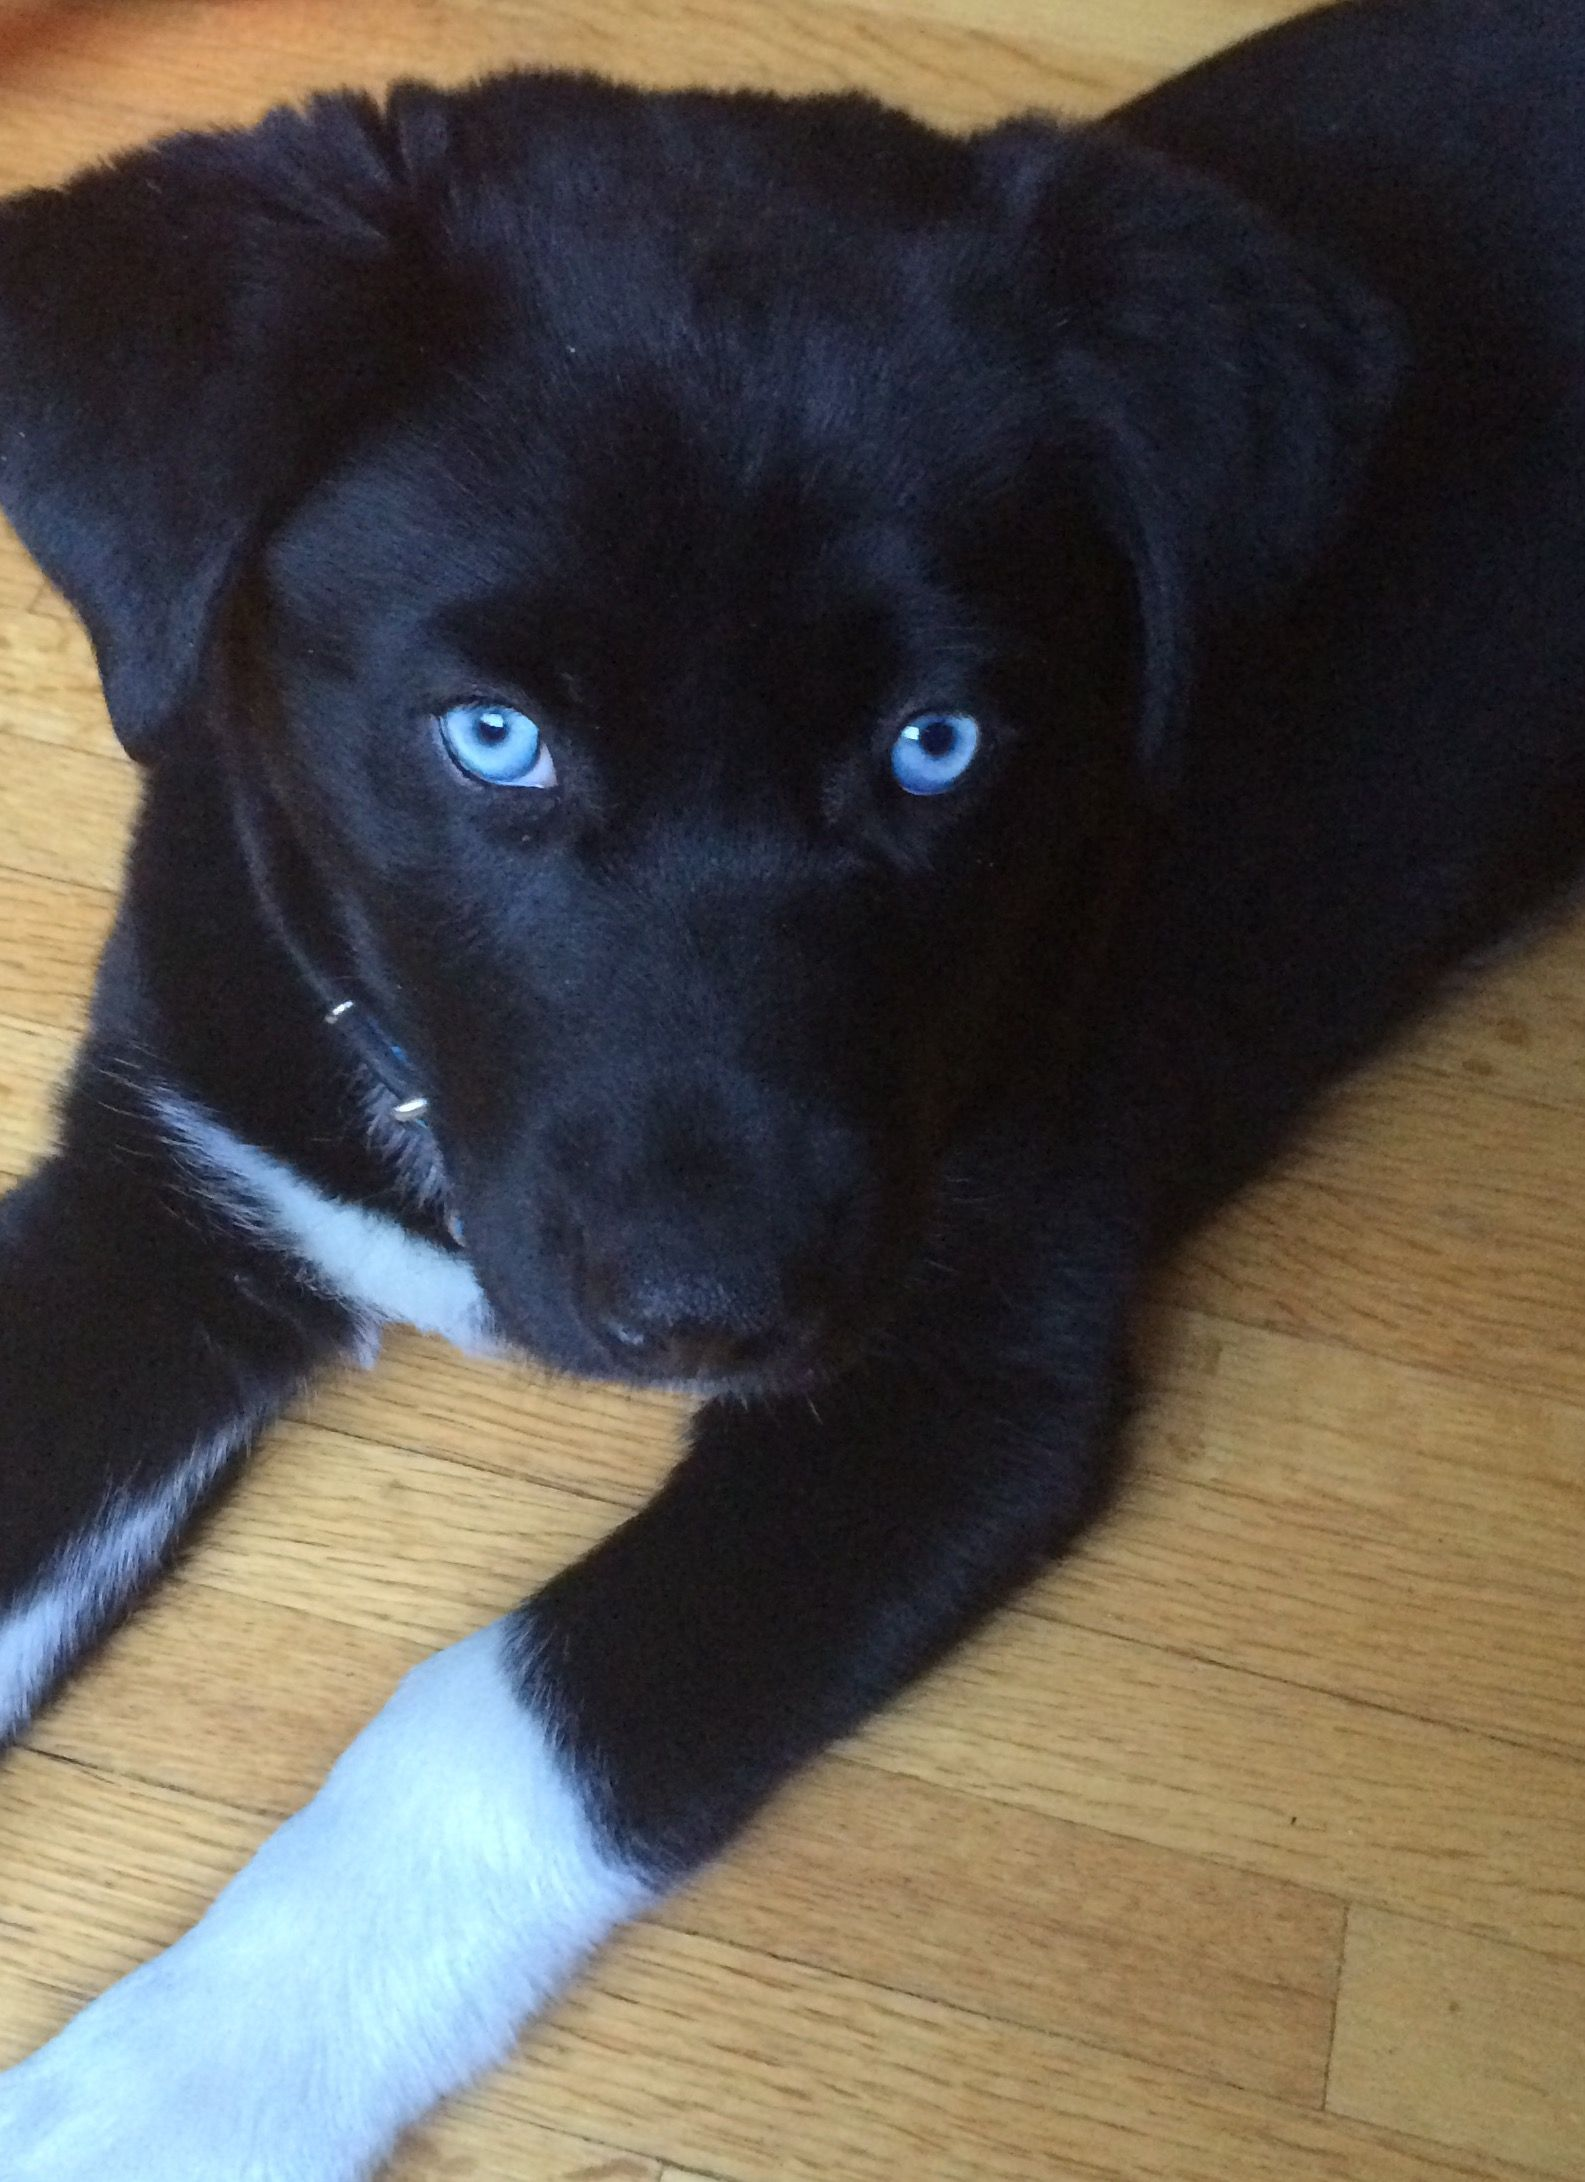 10 Week Old Siberian Retriever Huskador His Name Is Indigo Cute Dogs And Puppies Mixed Breed Dogs Black Lab Puppies